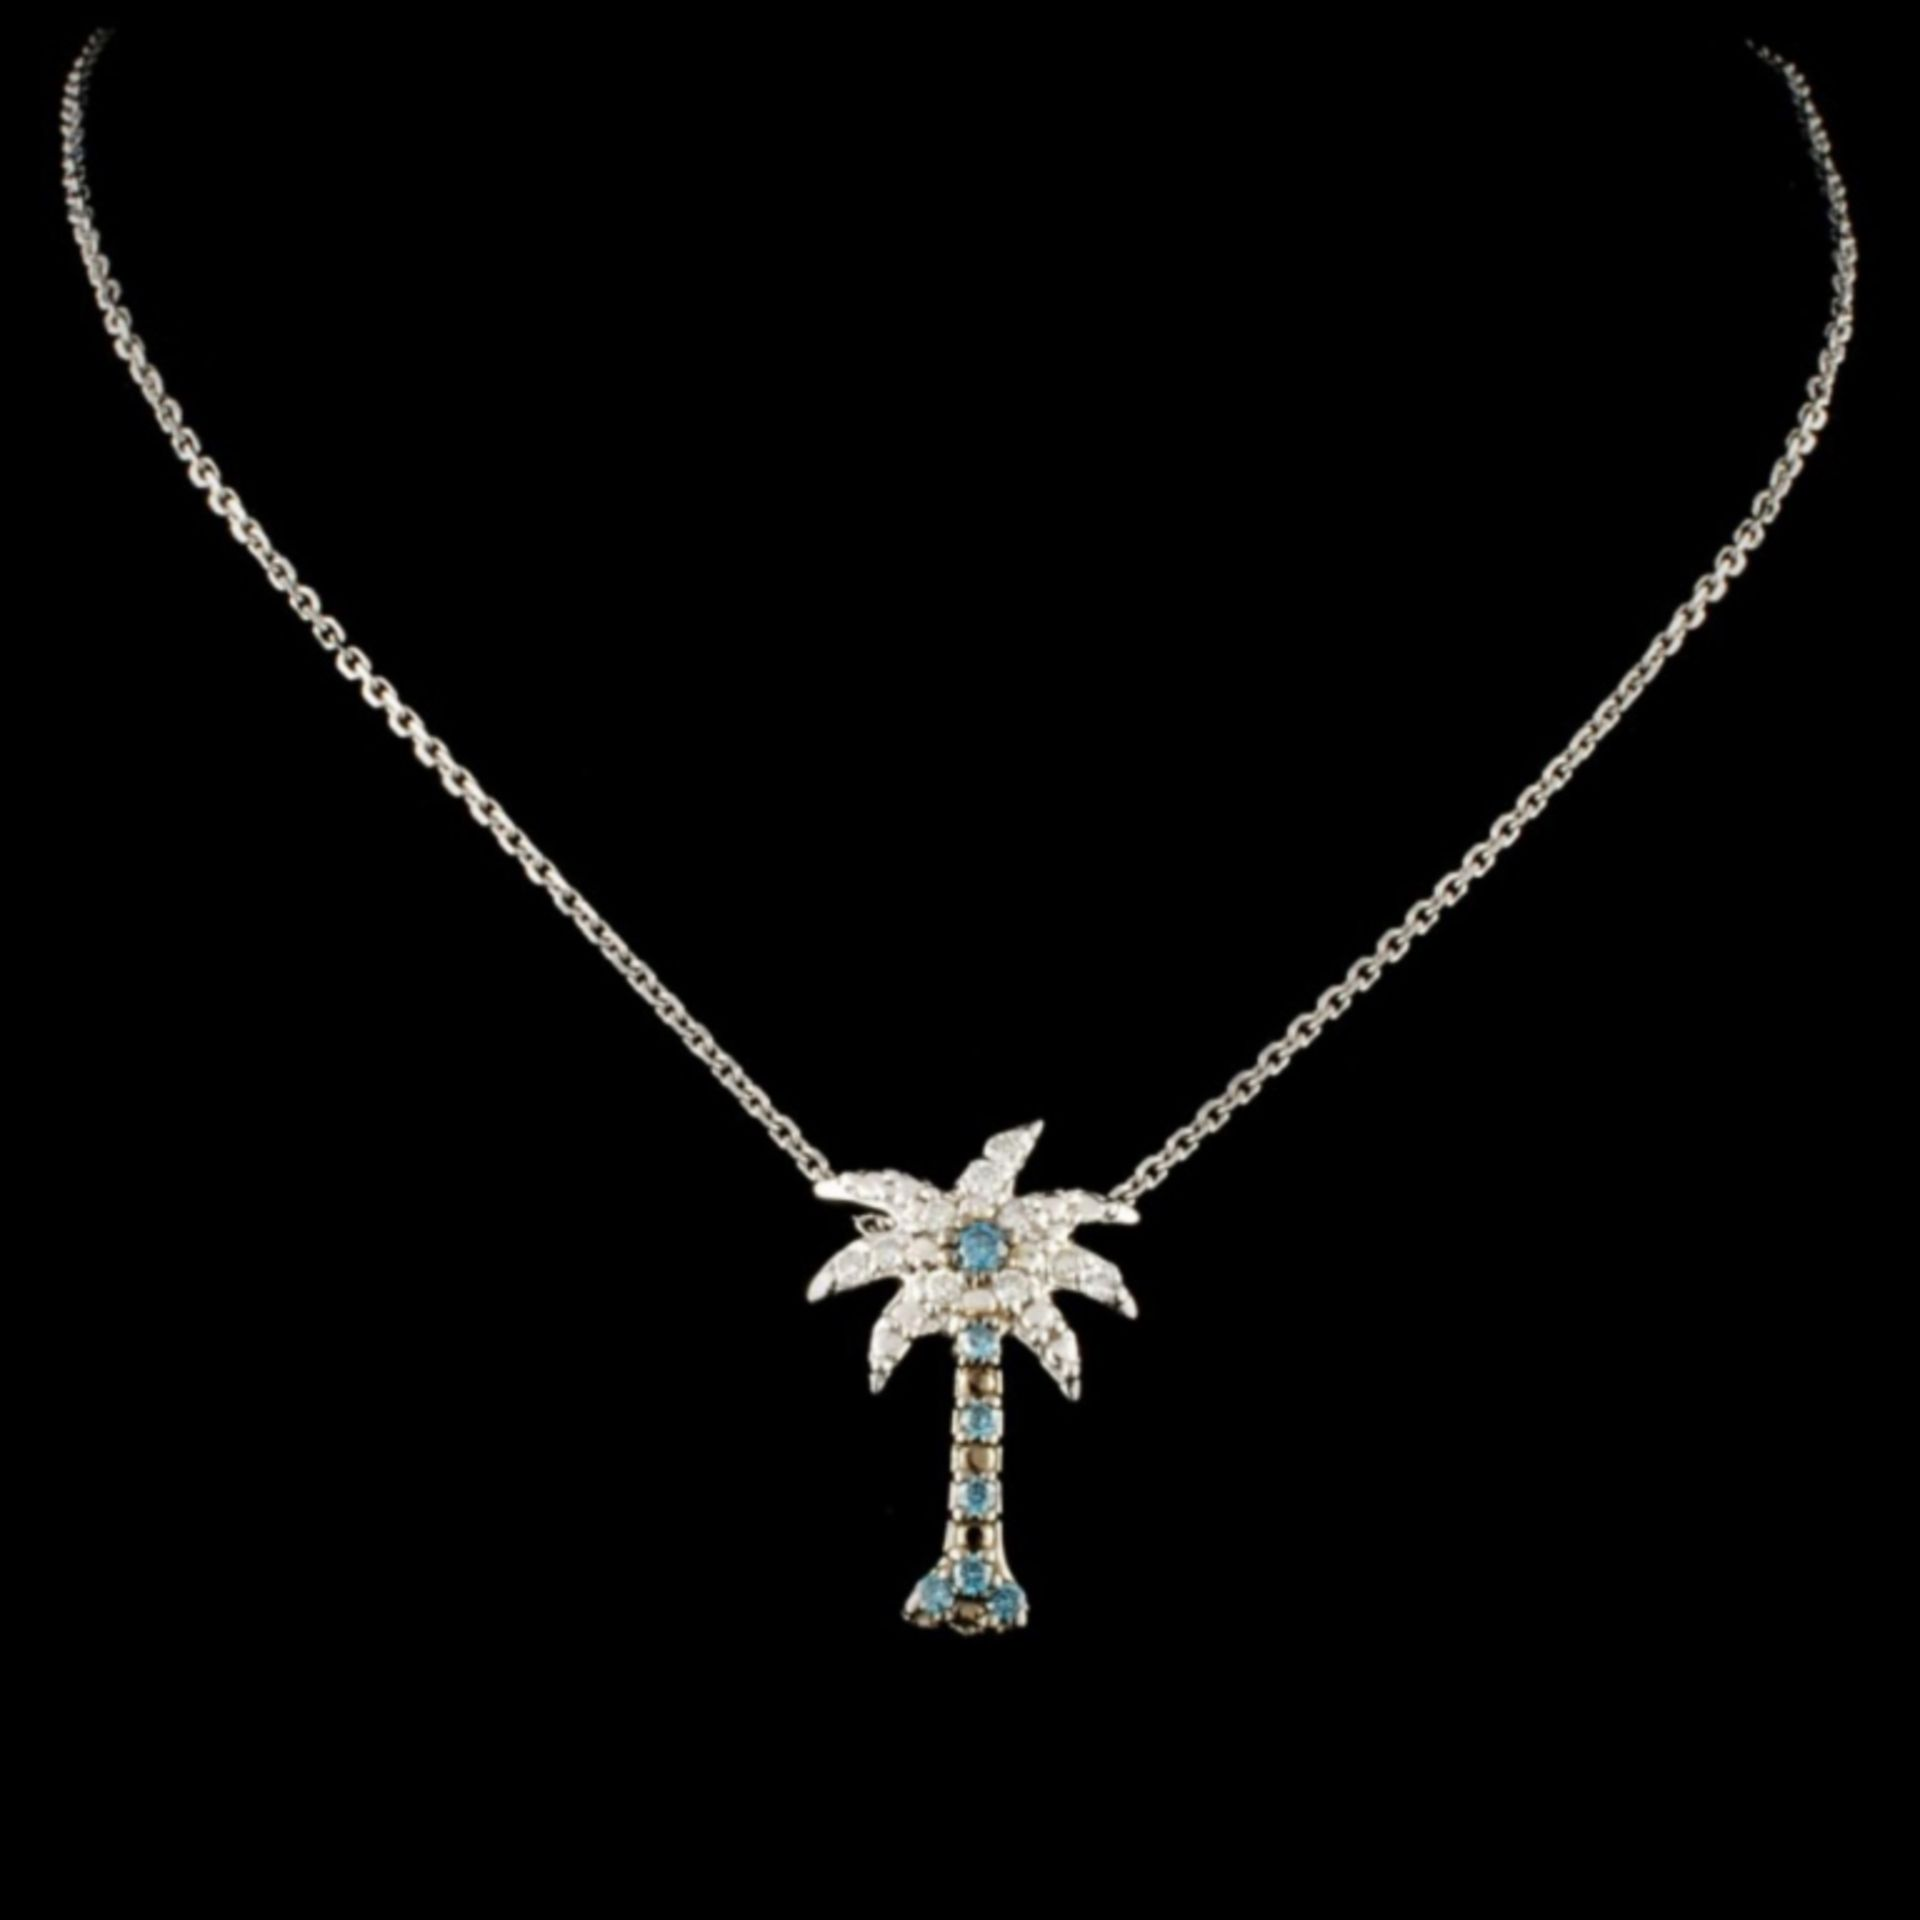 14K Gold 0.25ctw Fancy Color Diamond Pendant - Image 2 of 3